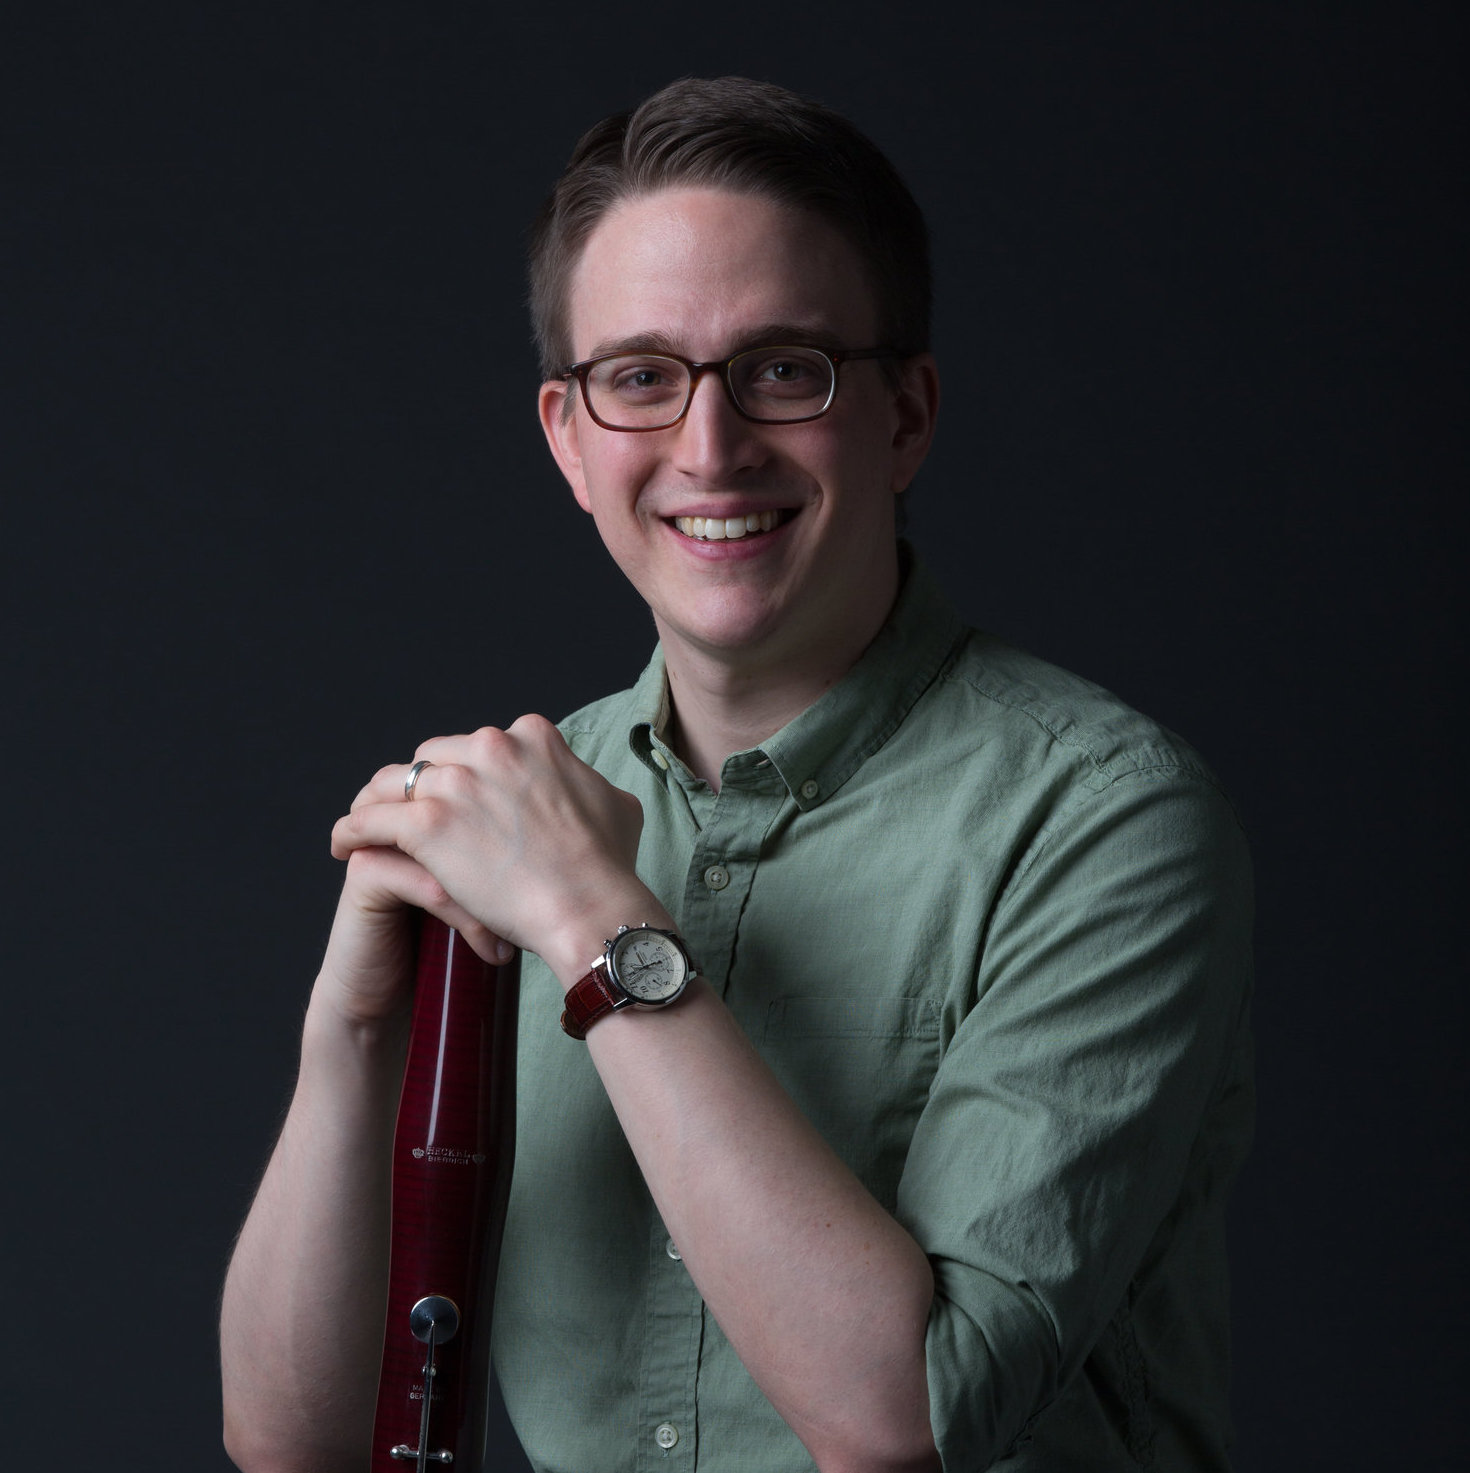 William+Short+bassoon-2.jpg